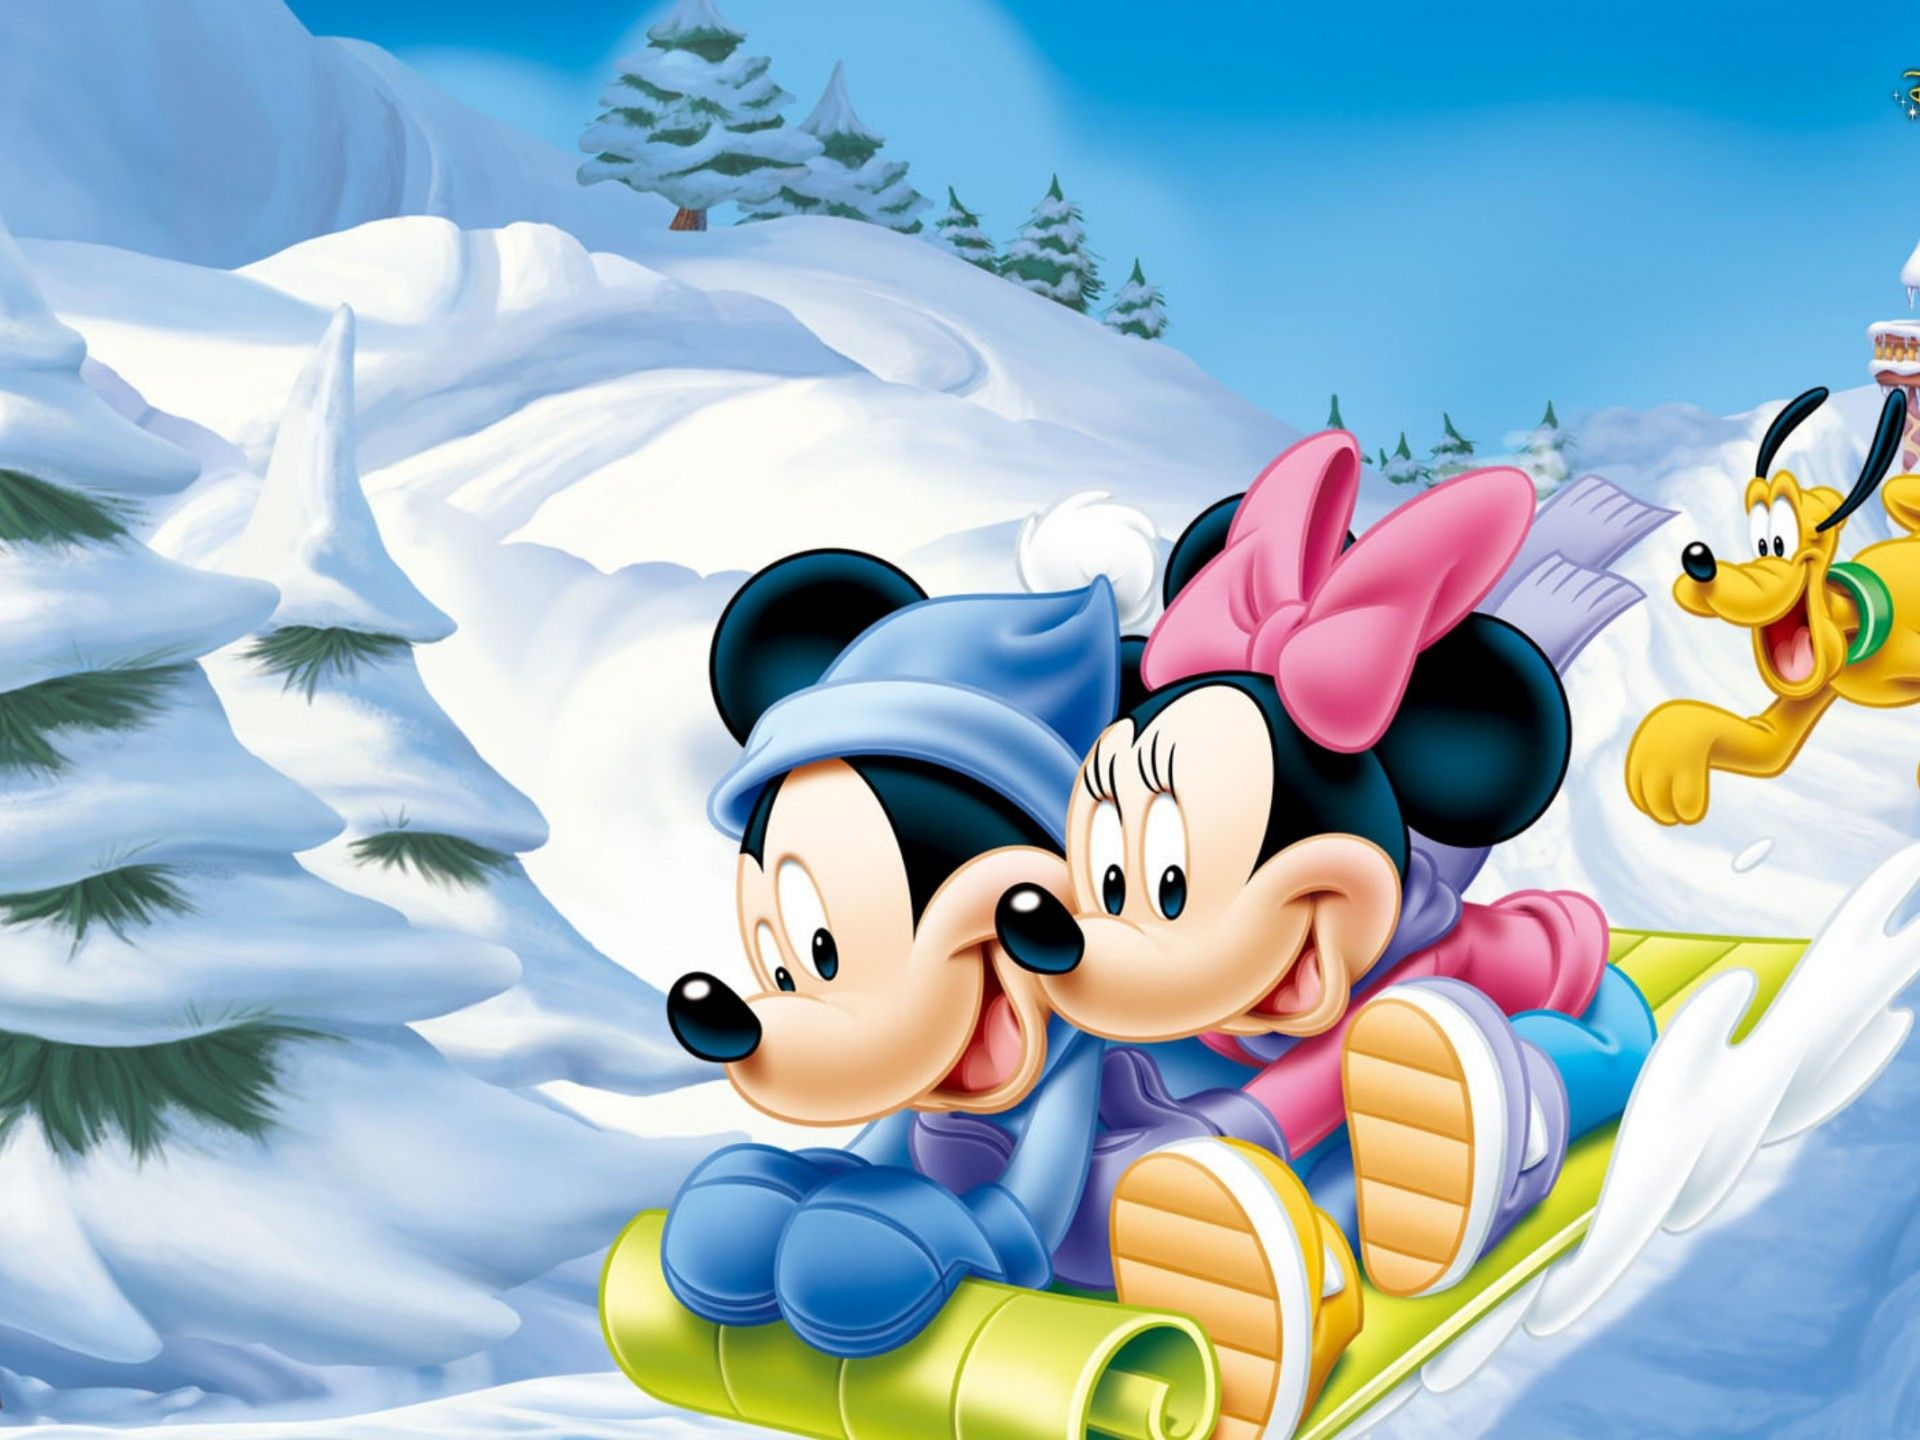 Mickey Mouse Cartoons Hd Wallpapers Download Hd Walls 1920 1080